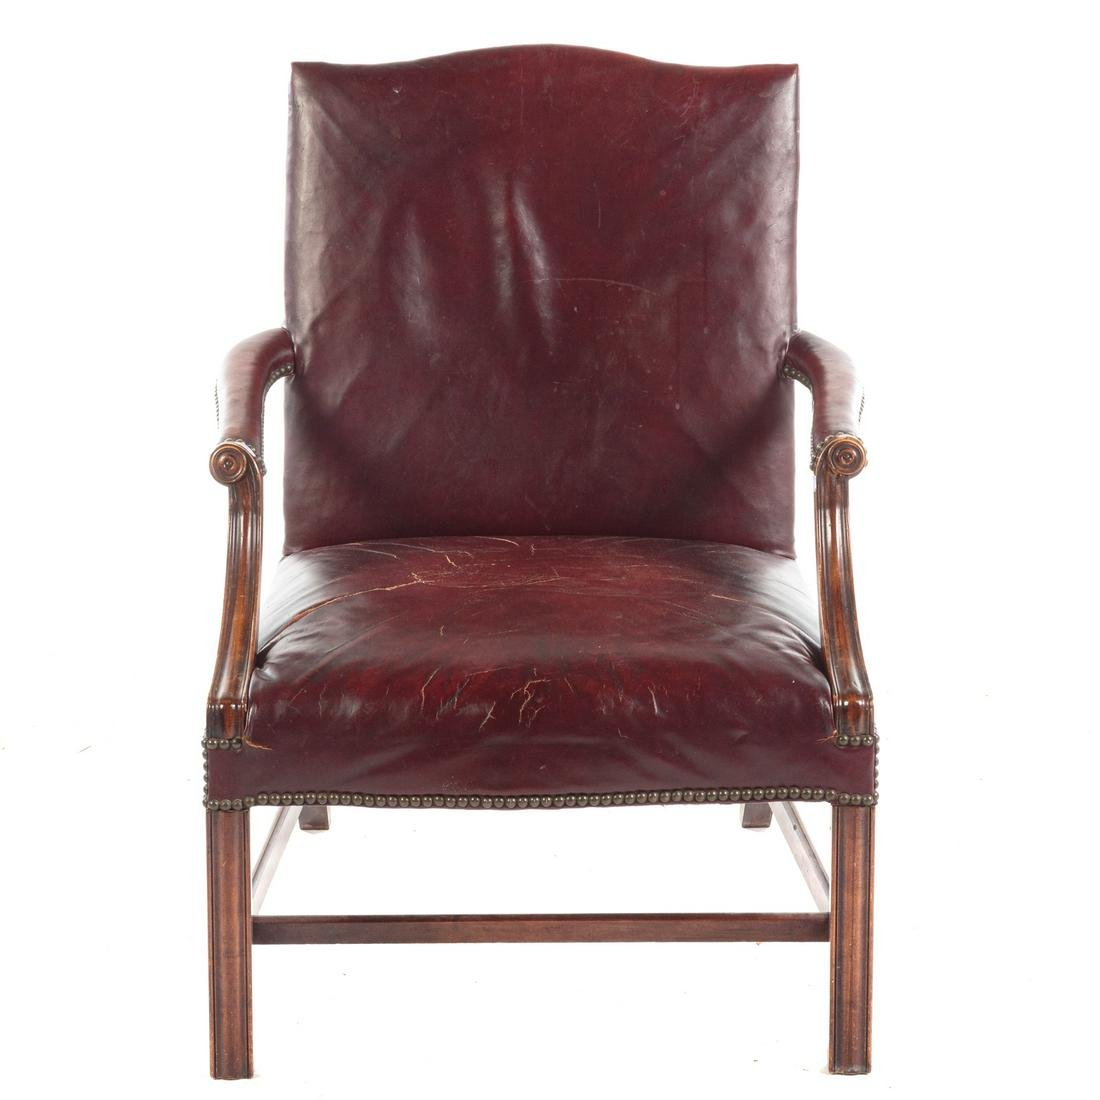 George III Style Leather Upholstered Lolling Chair